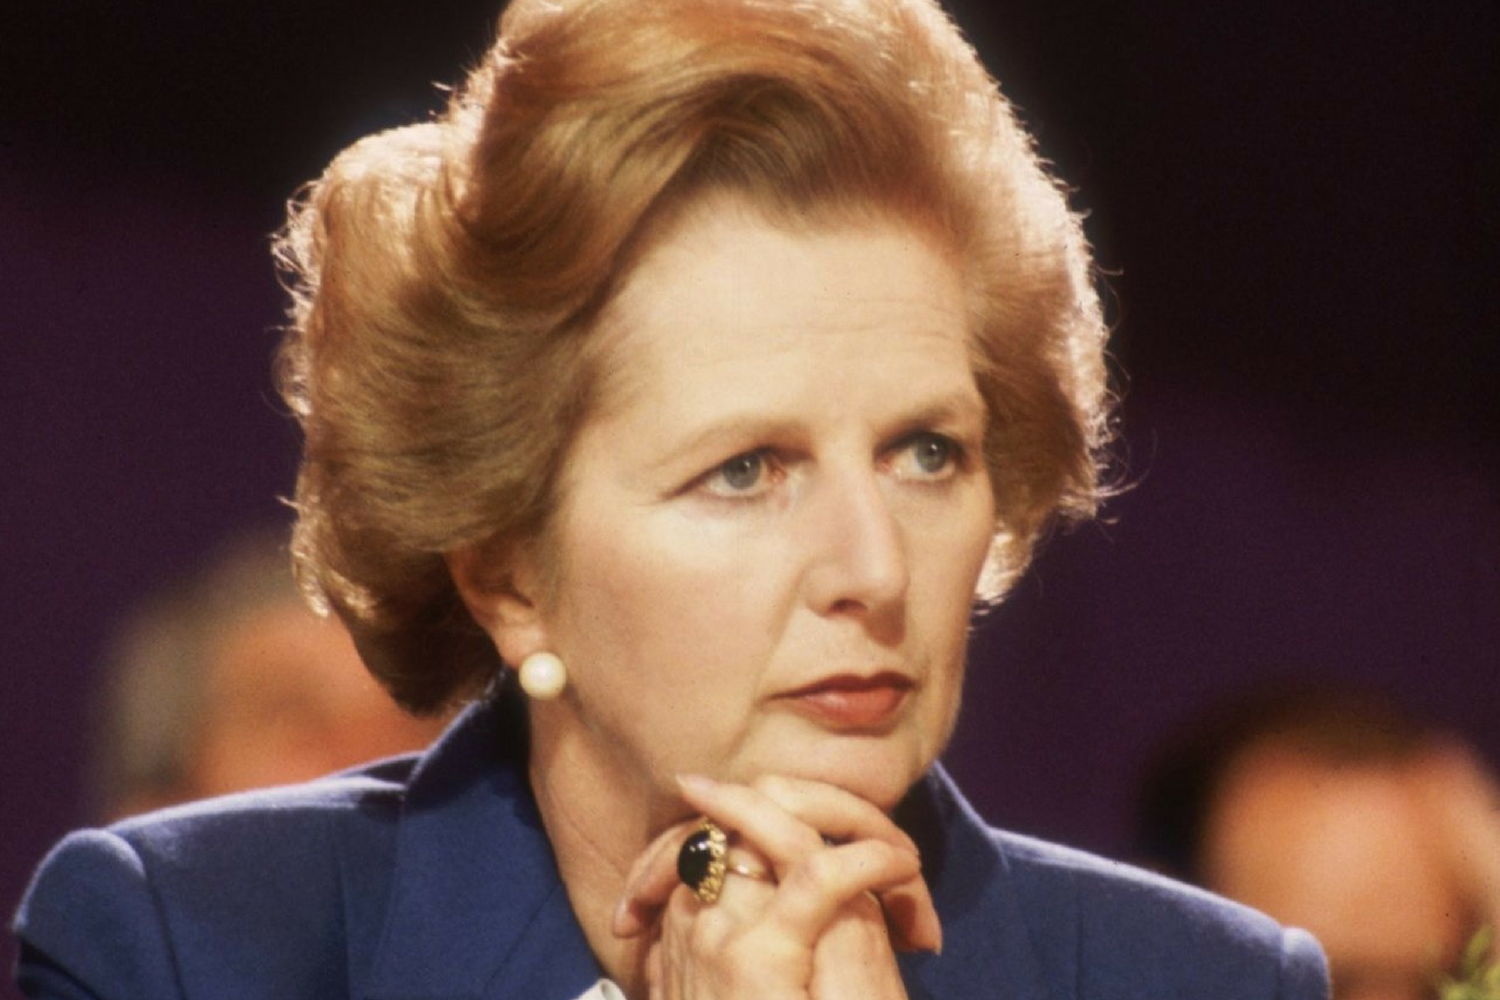 Margaret Thatcher: Britain Transformed - A Lecture by Noel Sloan